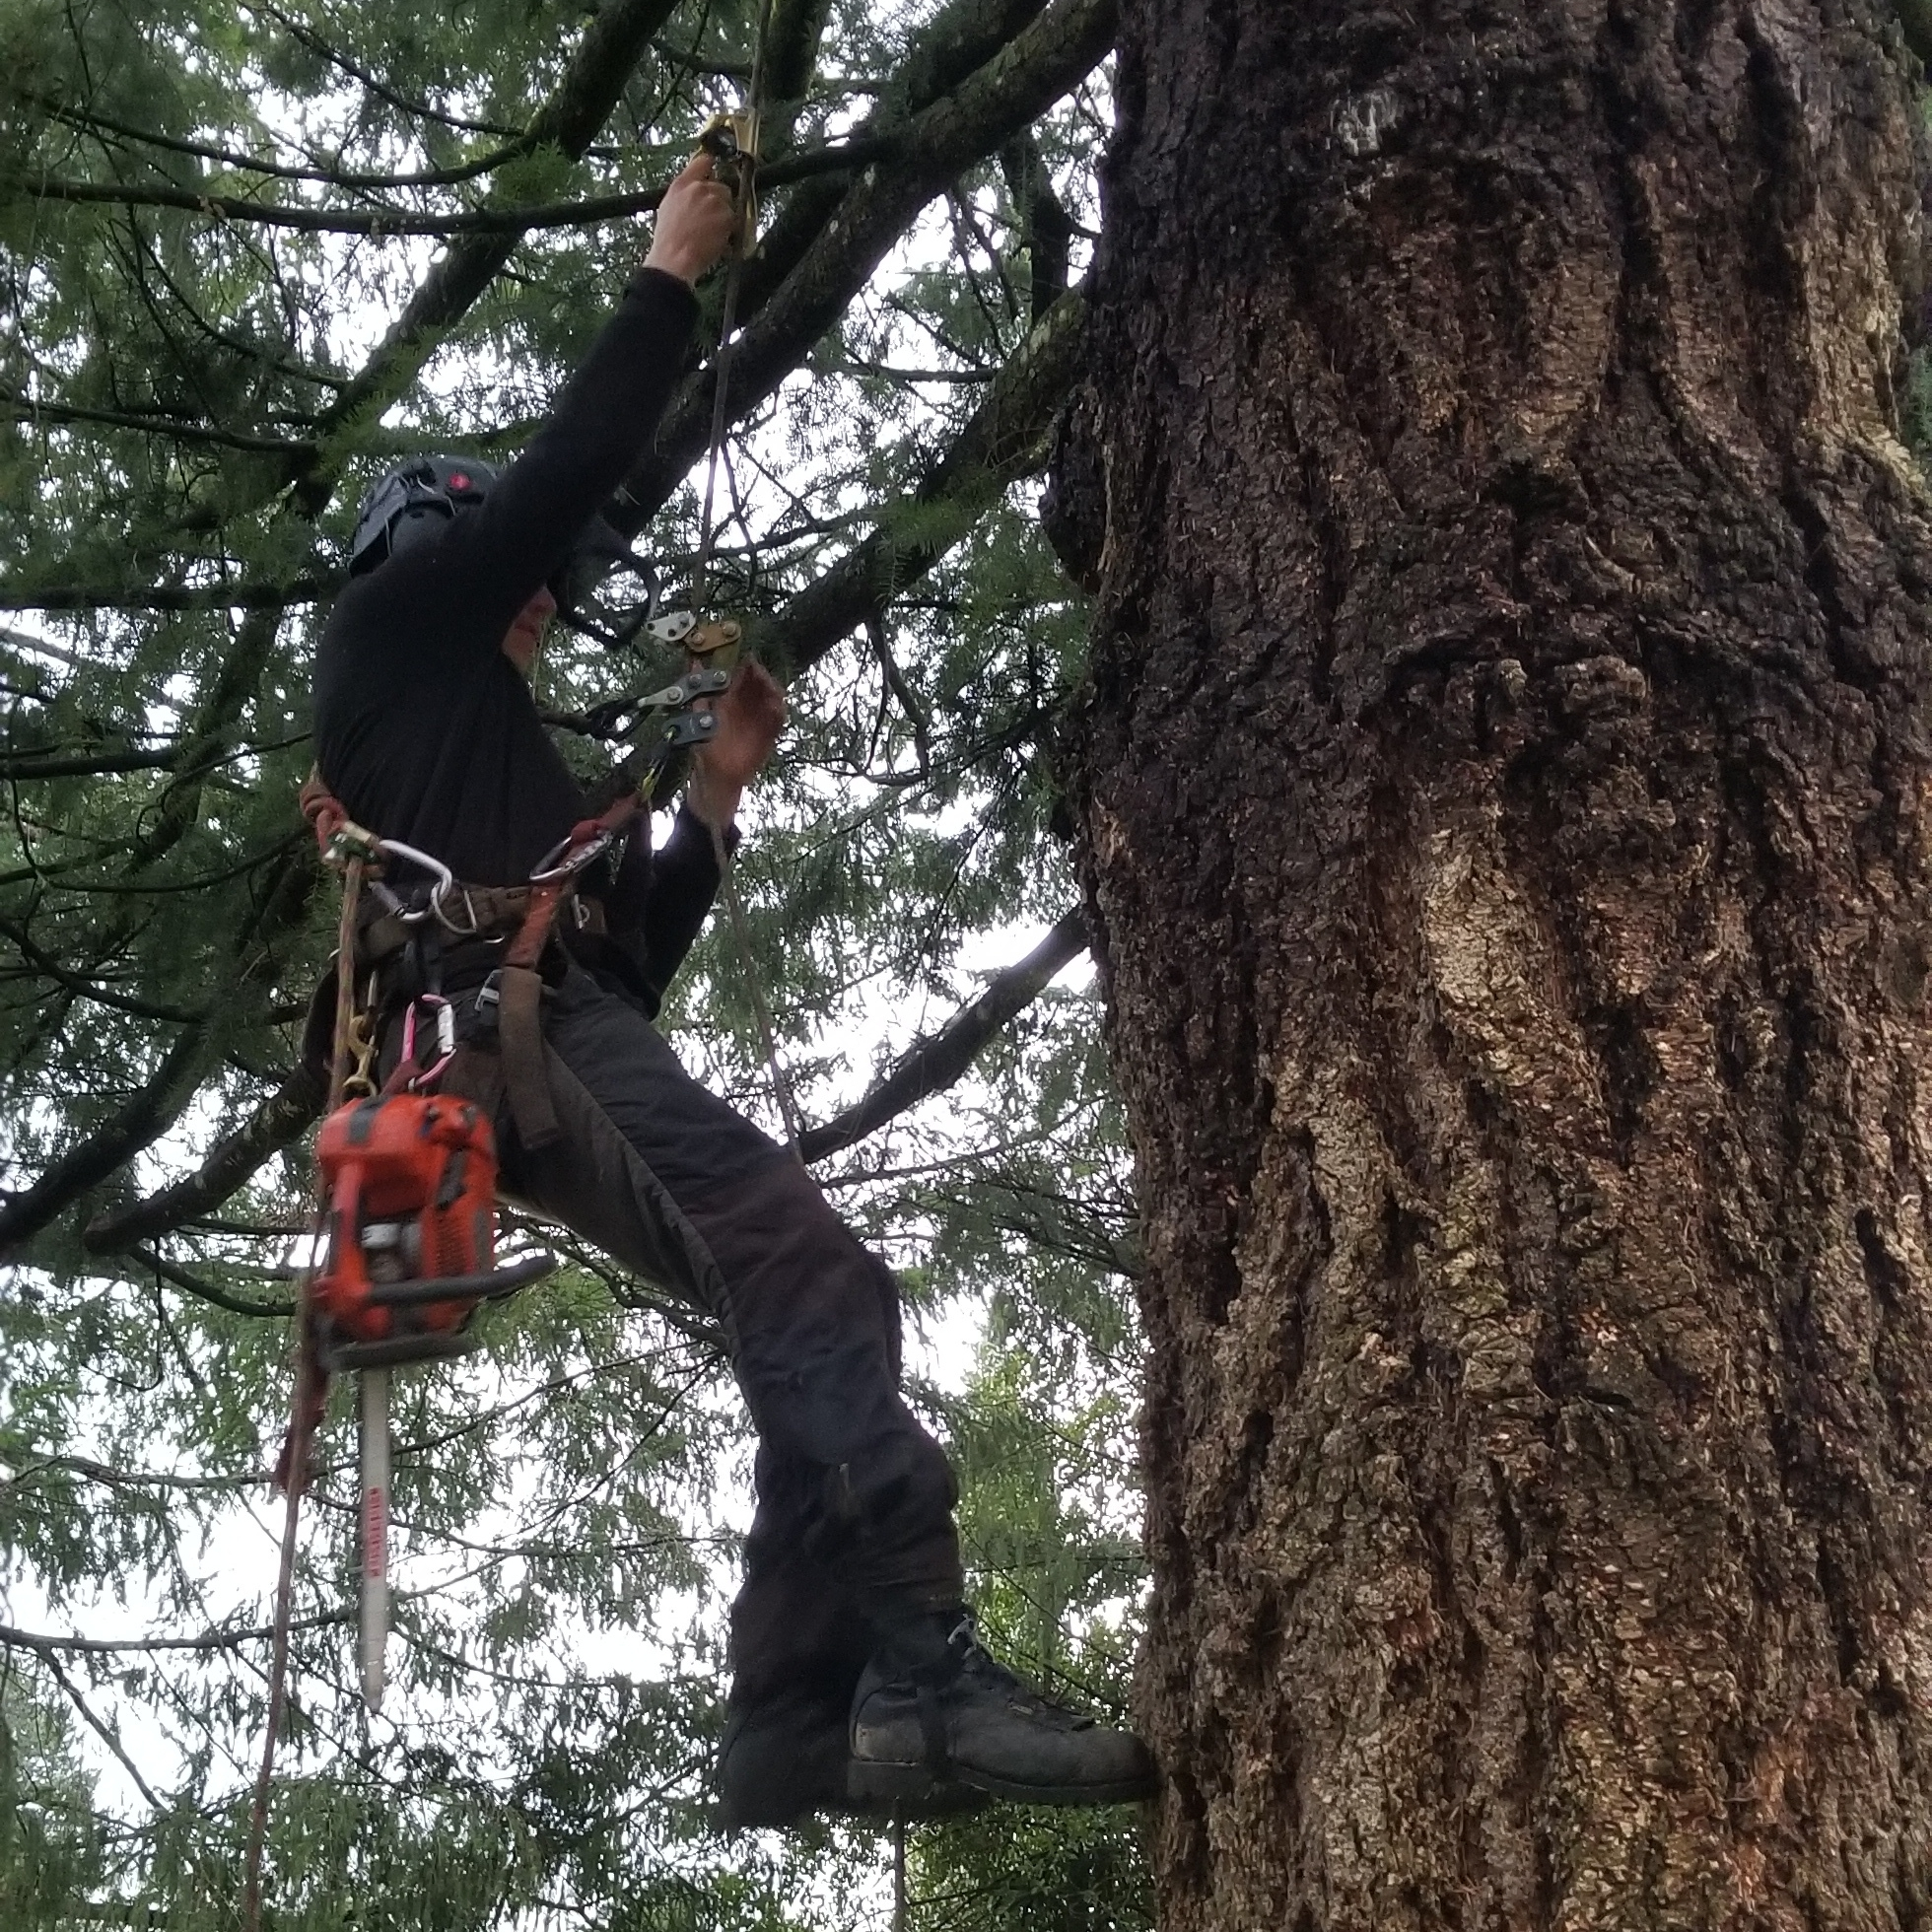 Pruning - We prune to ISA standards. We won't spur a tree that is not being removed, (except very rare circumstances and for safety reasons) and we won't prune a tree in a manner that is harmful to it. We do our very best to provide care that is good for our clients and their trees.